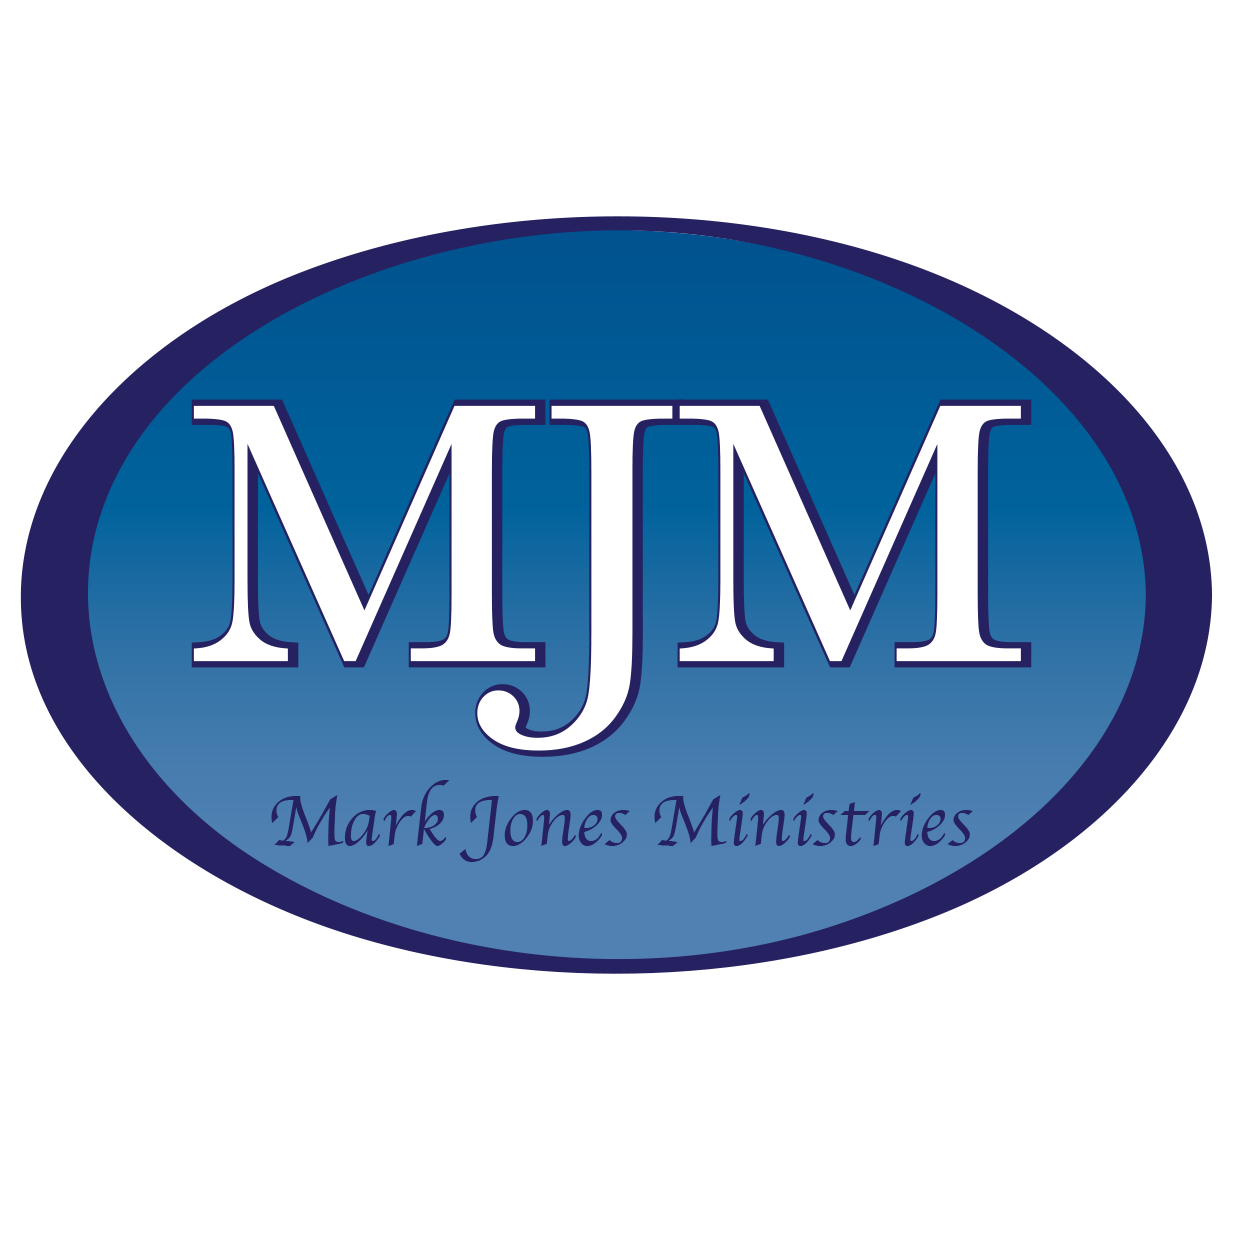 MARK JONES MINISTRIES